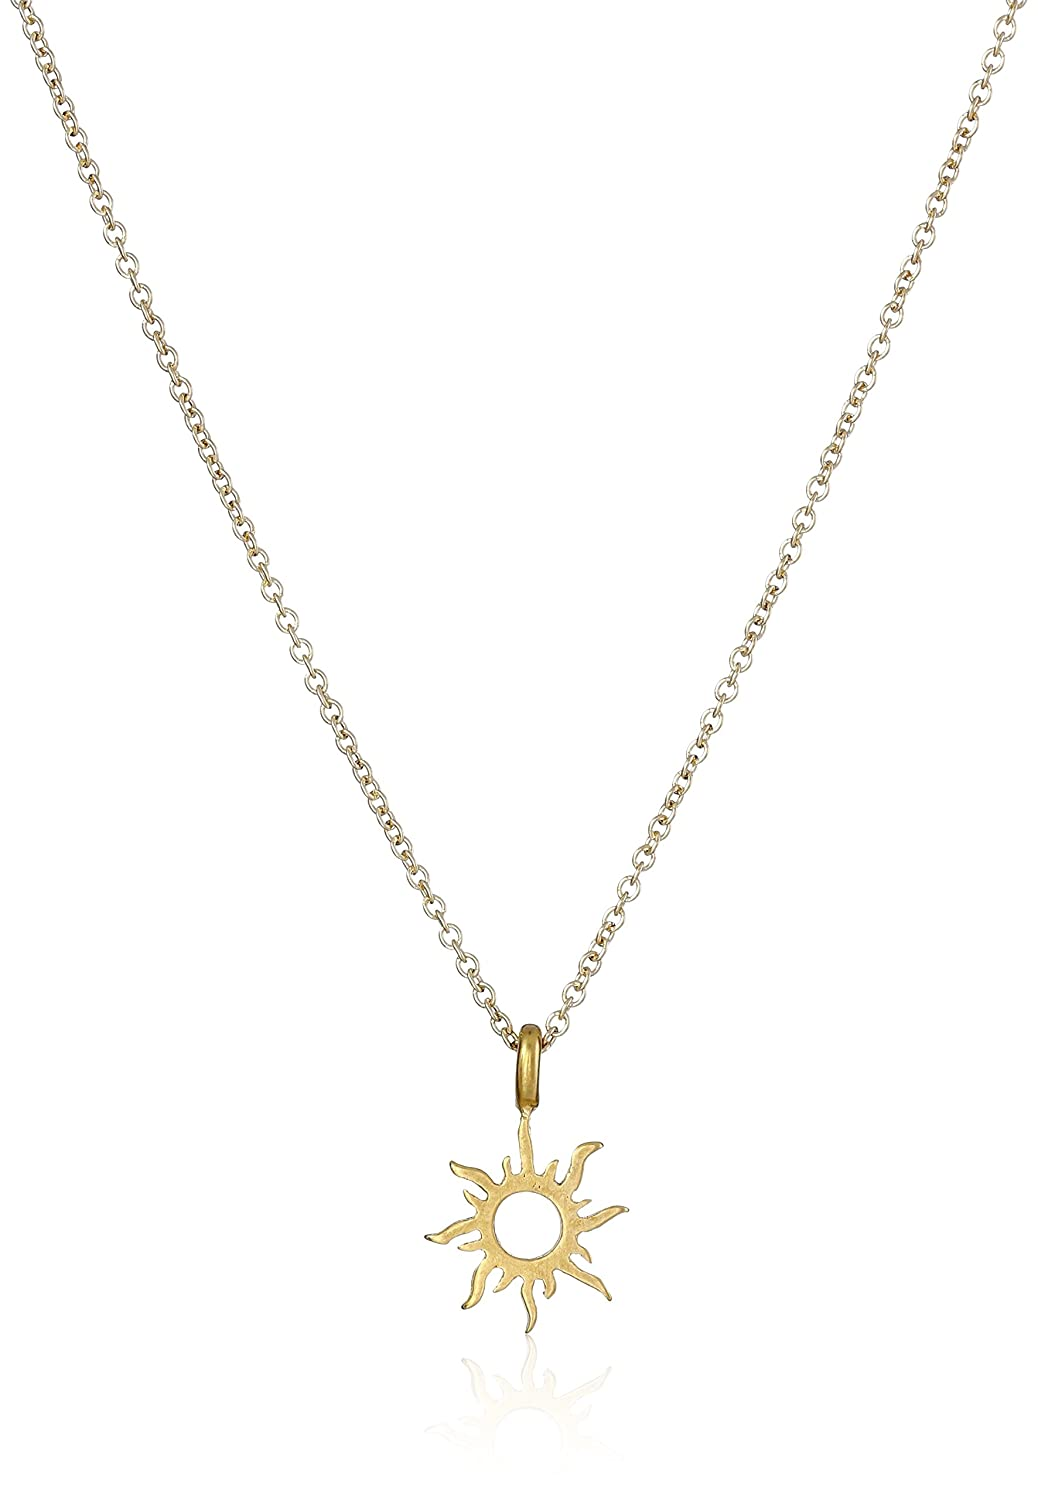 golden listing il fullxfull is a description necklace au pendant the sun